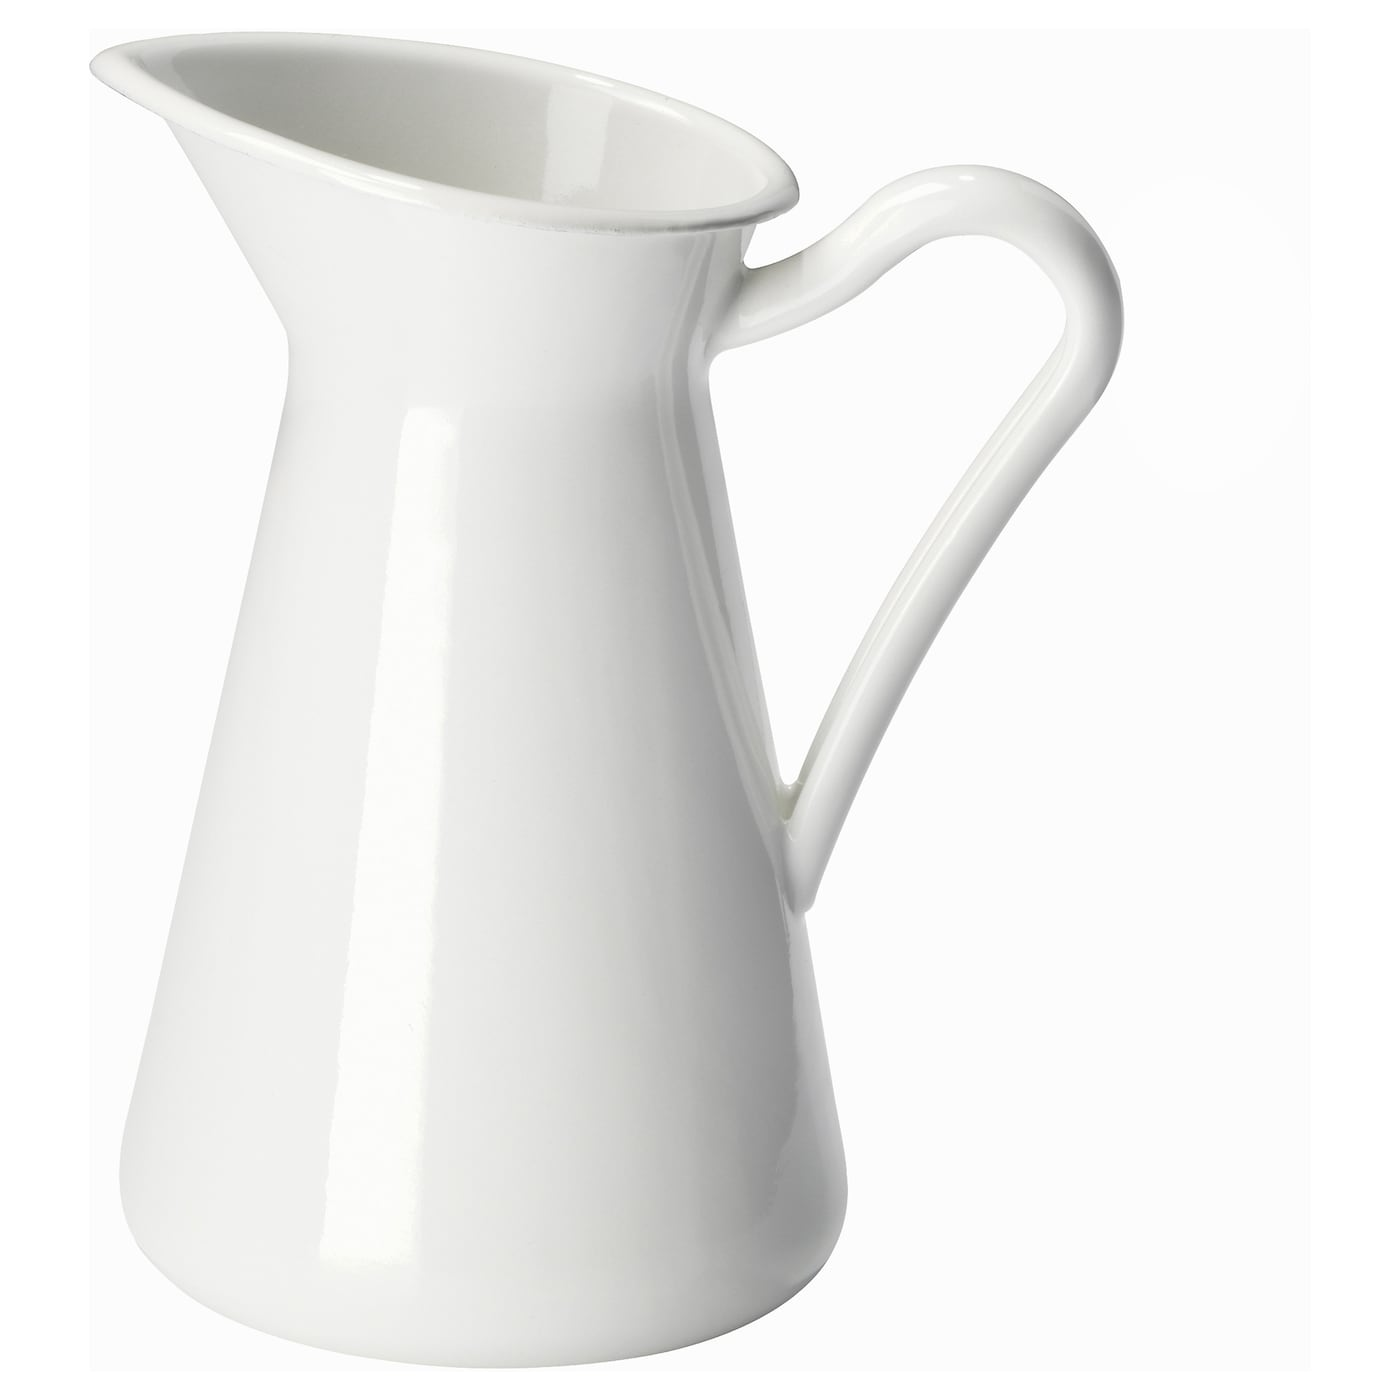 Design Ikea Vases vase white 16 cm ikea can also be used as a jug